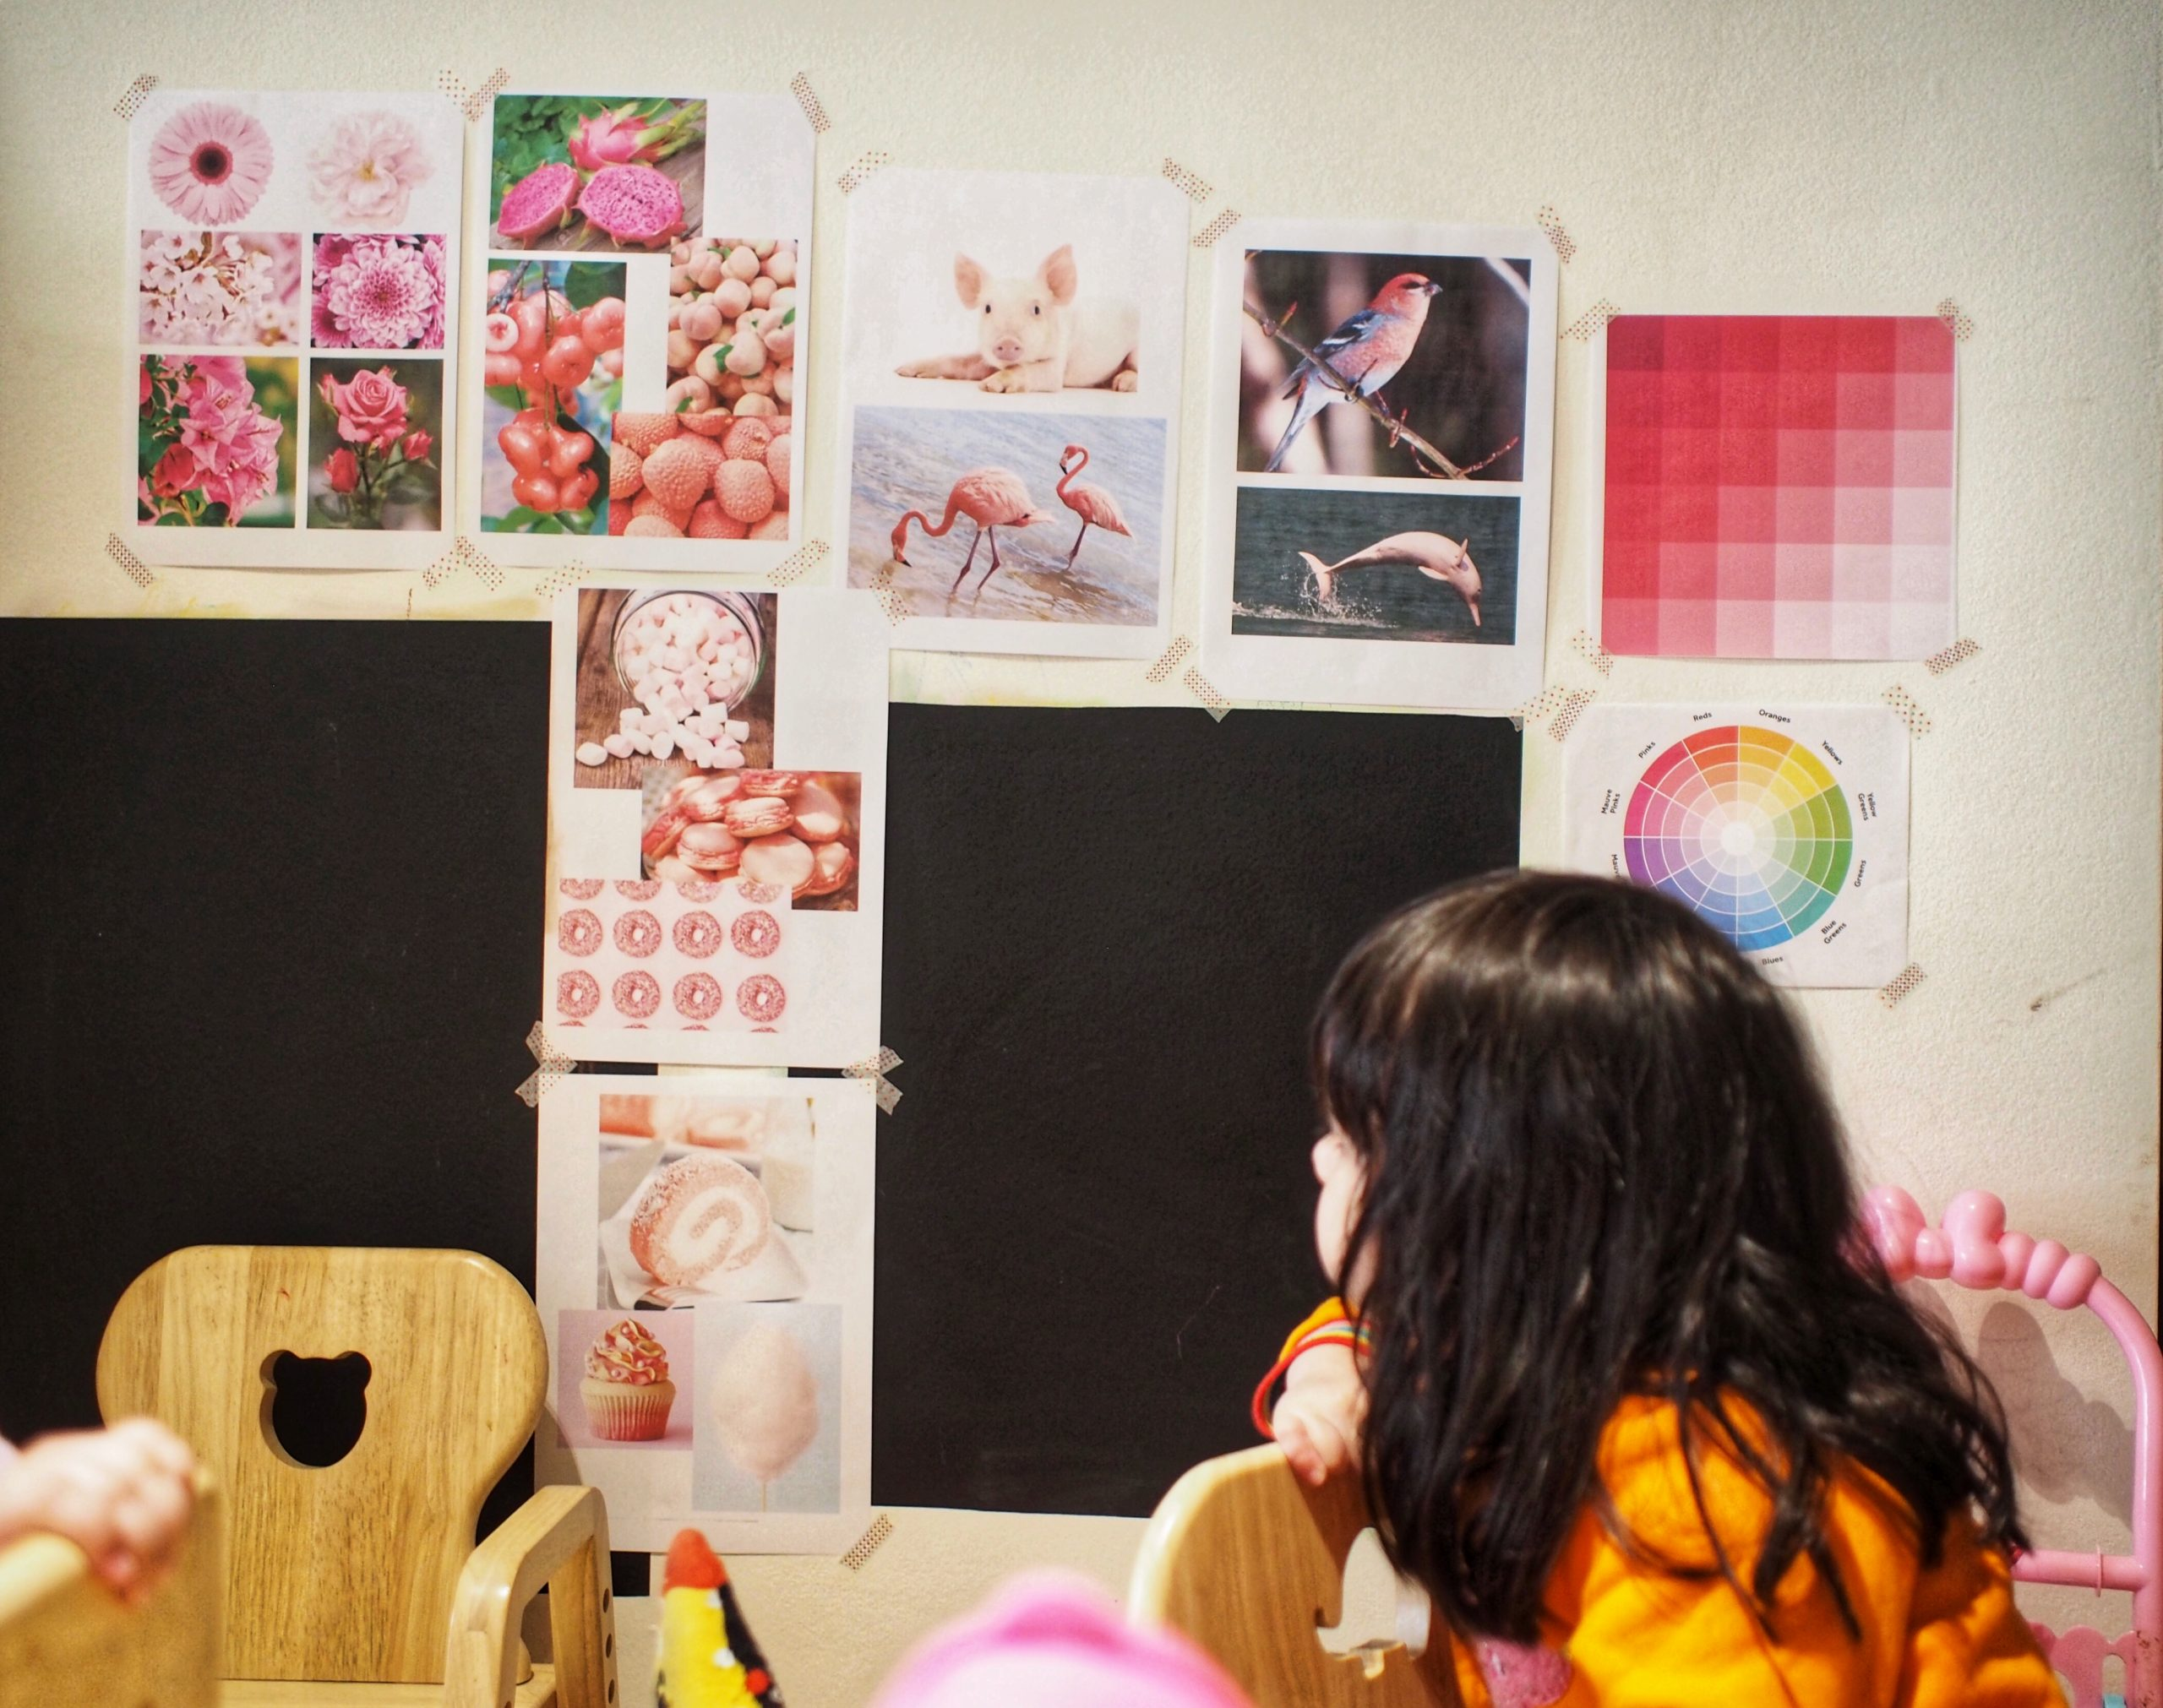 Exploring The Color Pink with Multicultural Kids